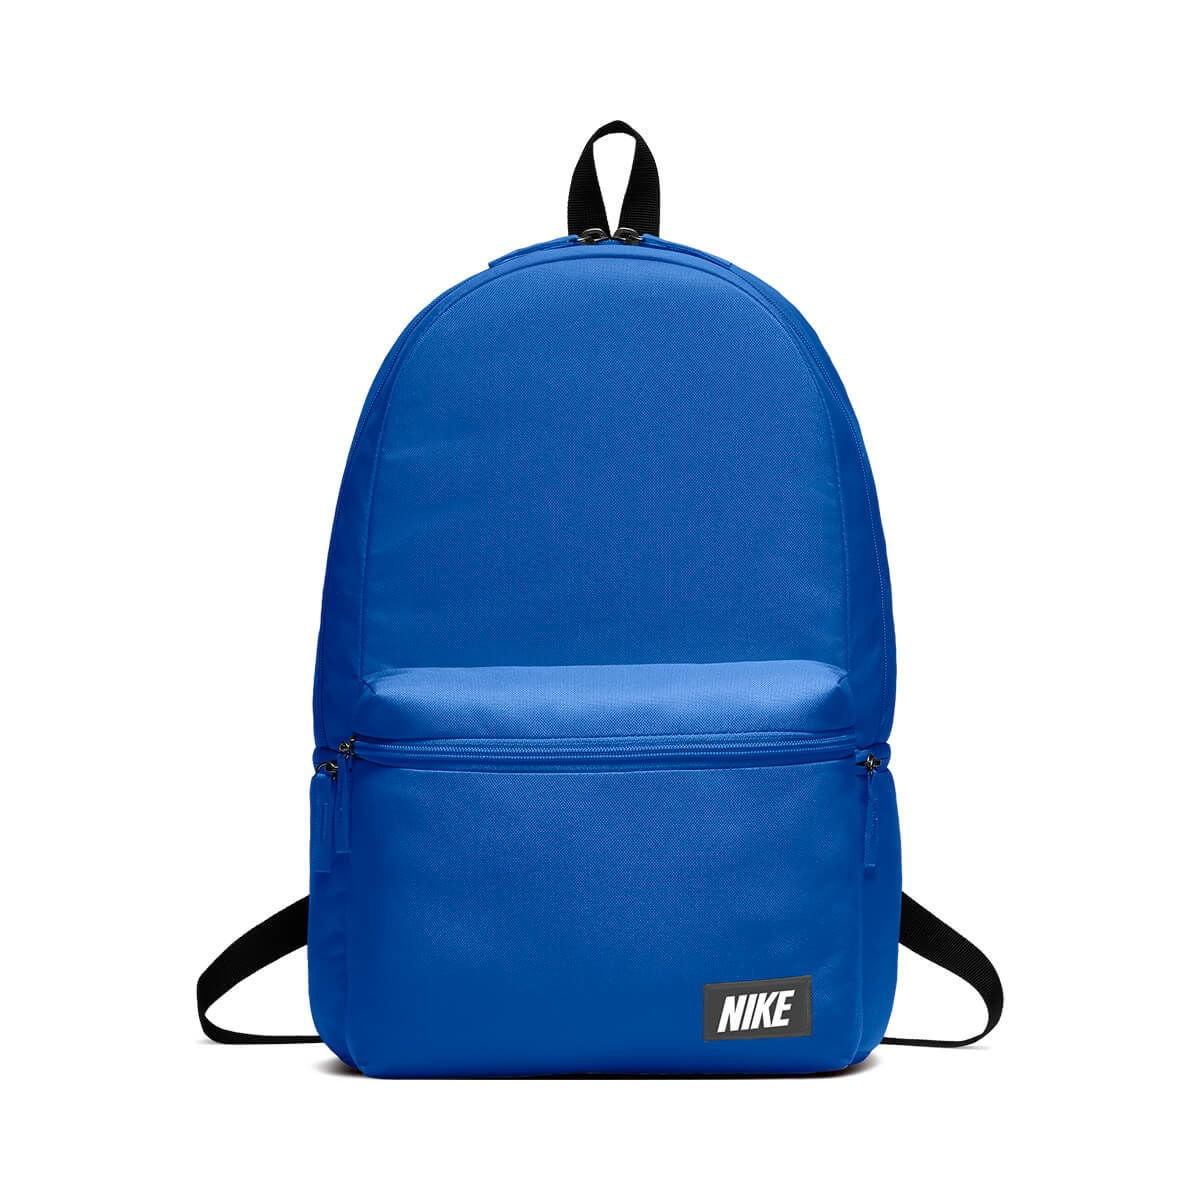 Unisex Basic Blue Backpack - Rodeo.Driving